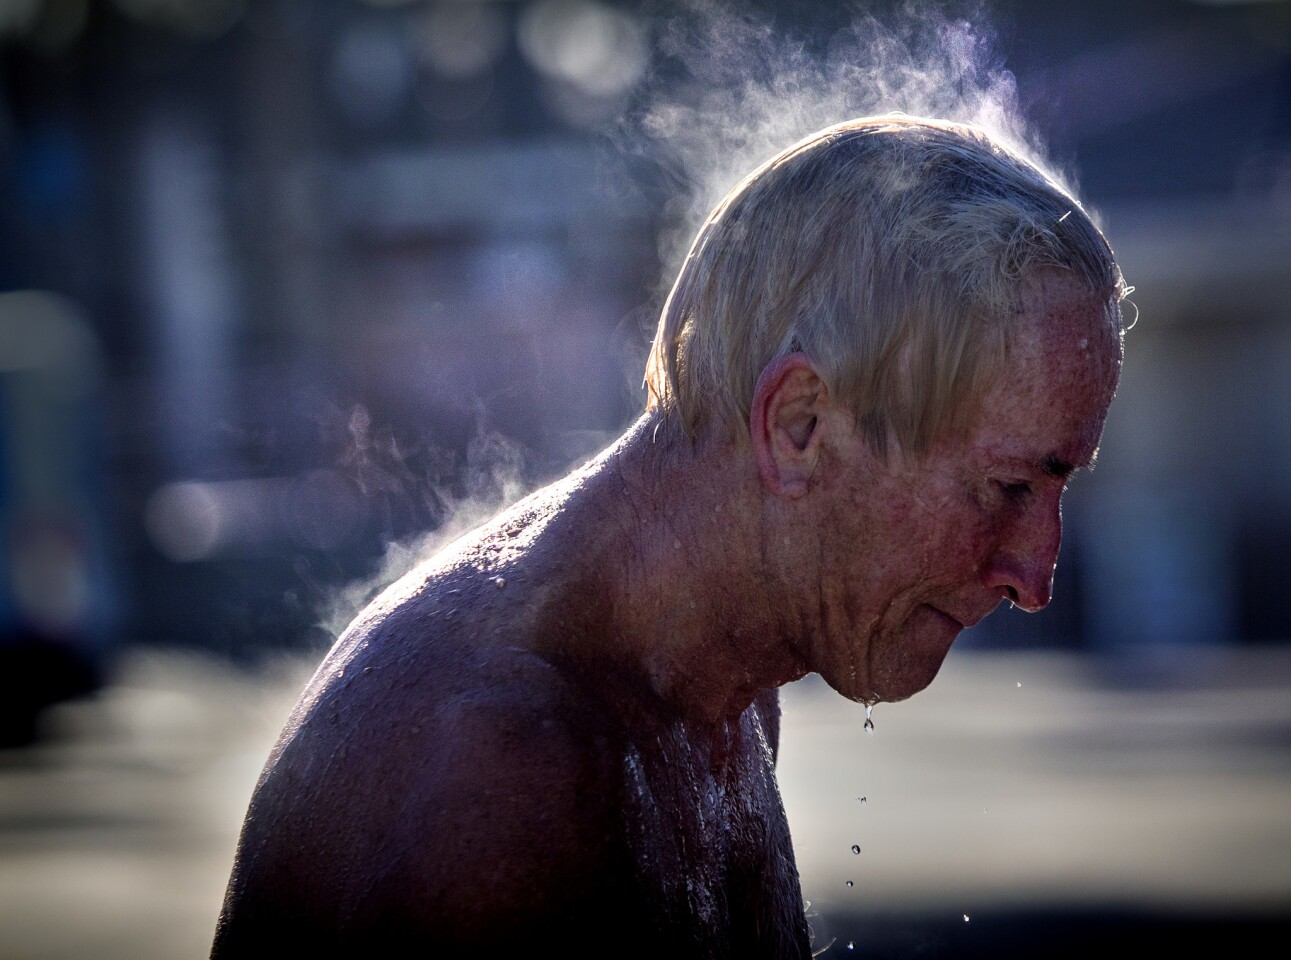 """Steam rises off Rick Rzeszewski of Tustin after he poured hot water over his head following a surf outing amid frigid air and cold water temperatures at sunrise in Huntington Beach. """"After being in that cold water, it feels wonderful,"""" said Rzeszewski, a pastor who surfs early in the morning before the crowds arrive."""